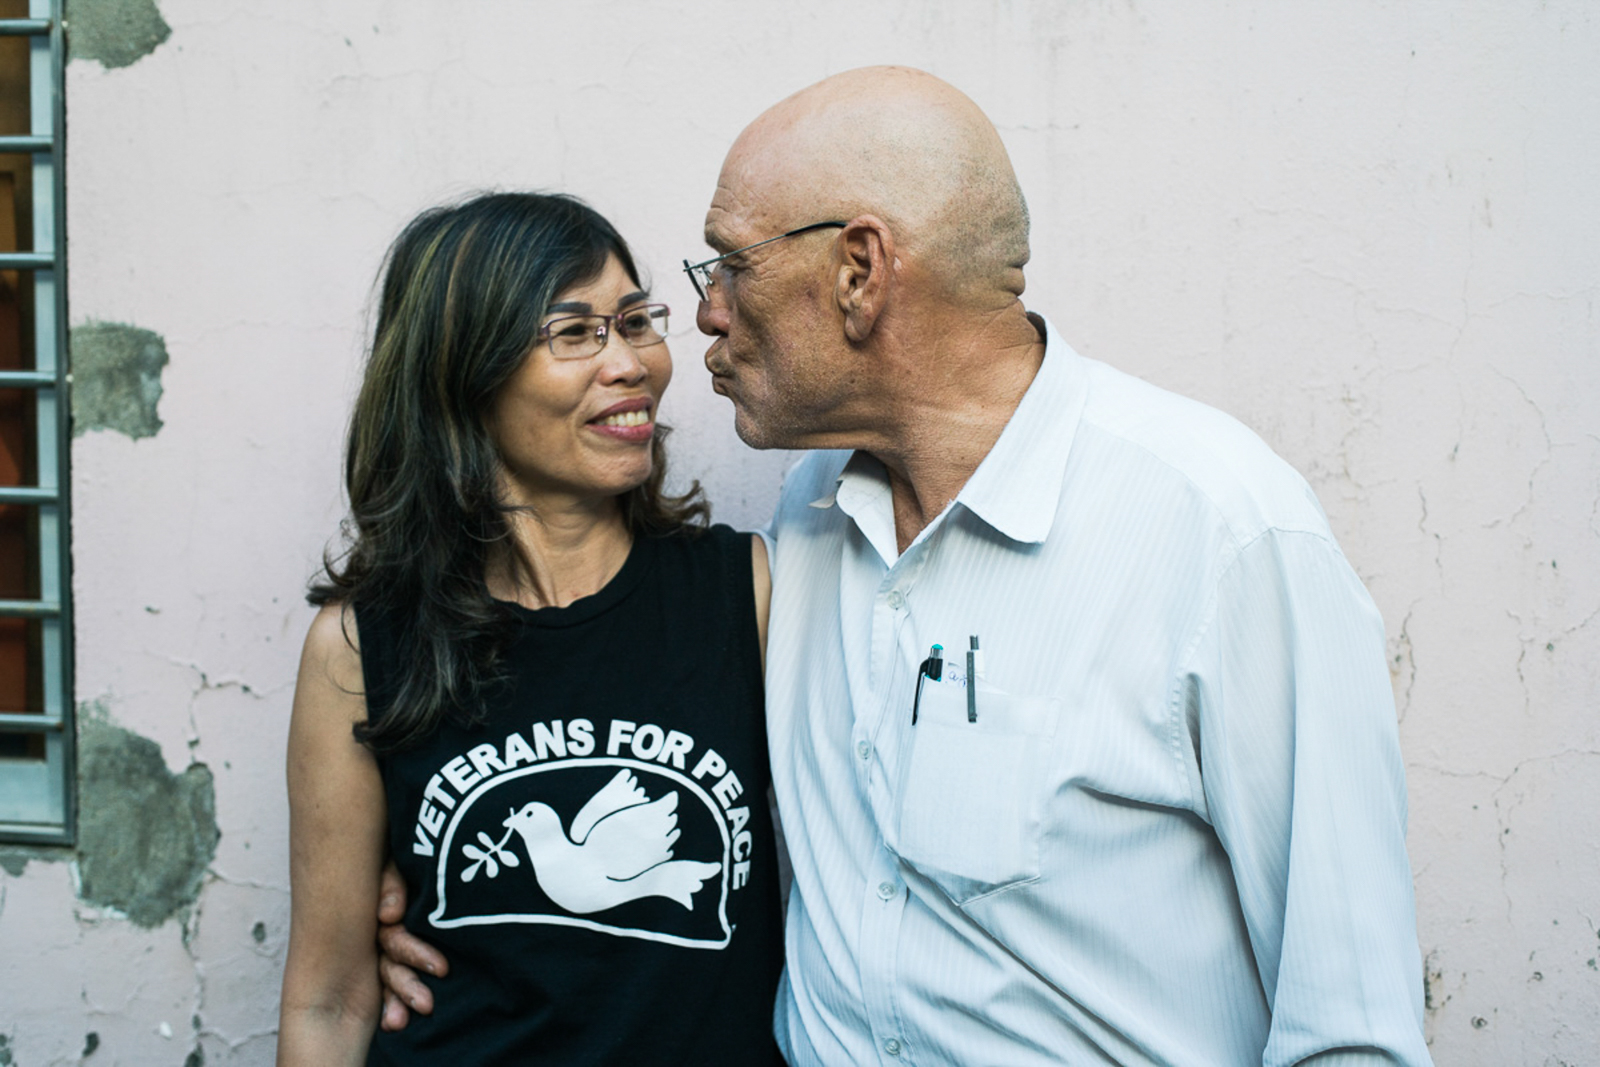 In 1968, David Clark never expected that years later he would share his life with a Vietnamese woman. He and his wife Huong, now Ushi Clark (57), have been married for three and a half years. Together they live in a House in Da Nang.